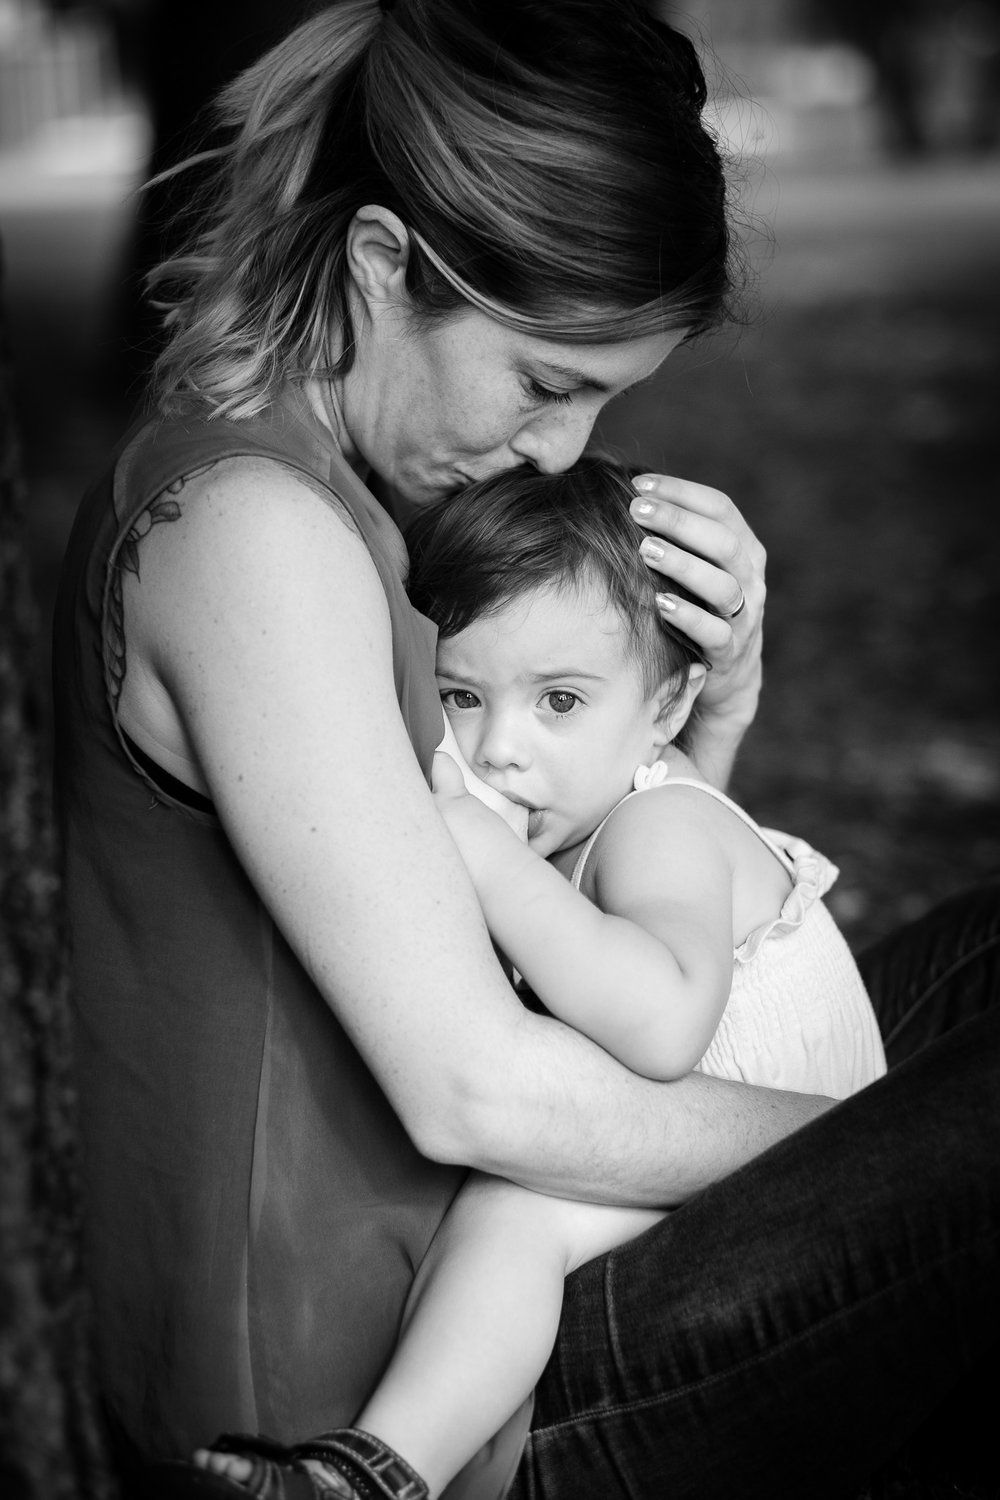 """For me breastfeeding is more than just feeding my daughters. it's about nurturing, comforting, being there for them when they need me the most. I'll always look back on these days with such a accomplished feeling."" ~ Claudia and her daughter Billie"